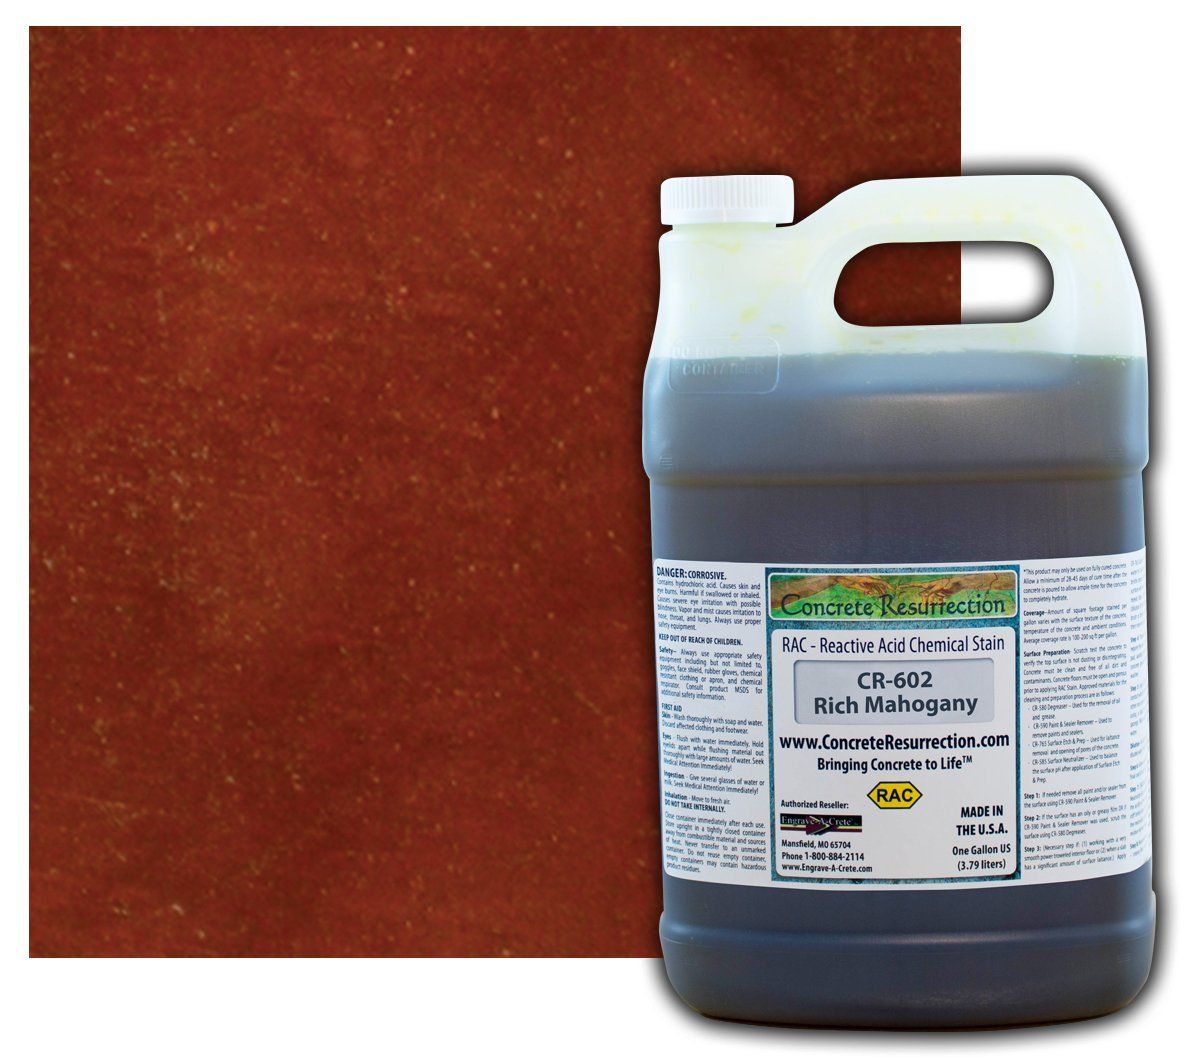 Concrete Stain Professional Easy to Use Acid Stain Rich Mahogany (Dark Brown with Red Undertones) - 1 Gallon Concrete Resurrection